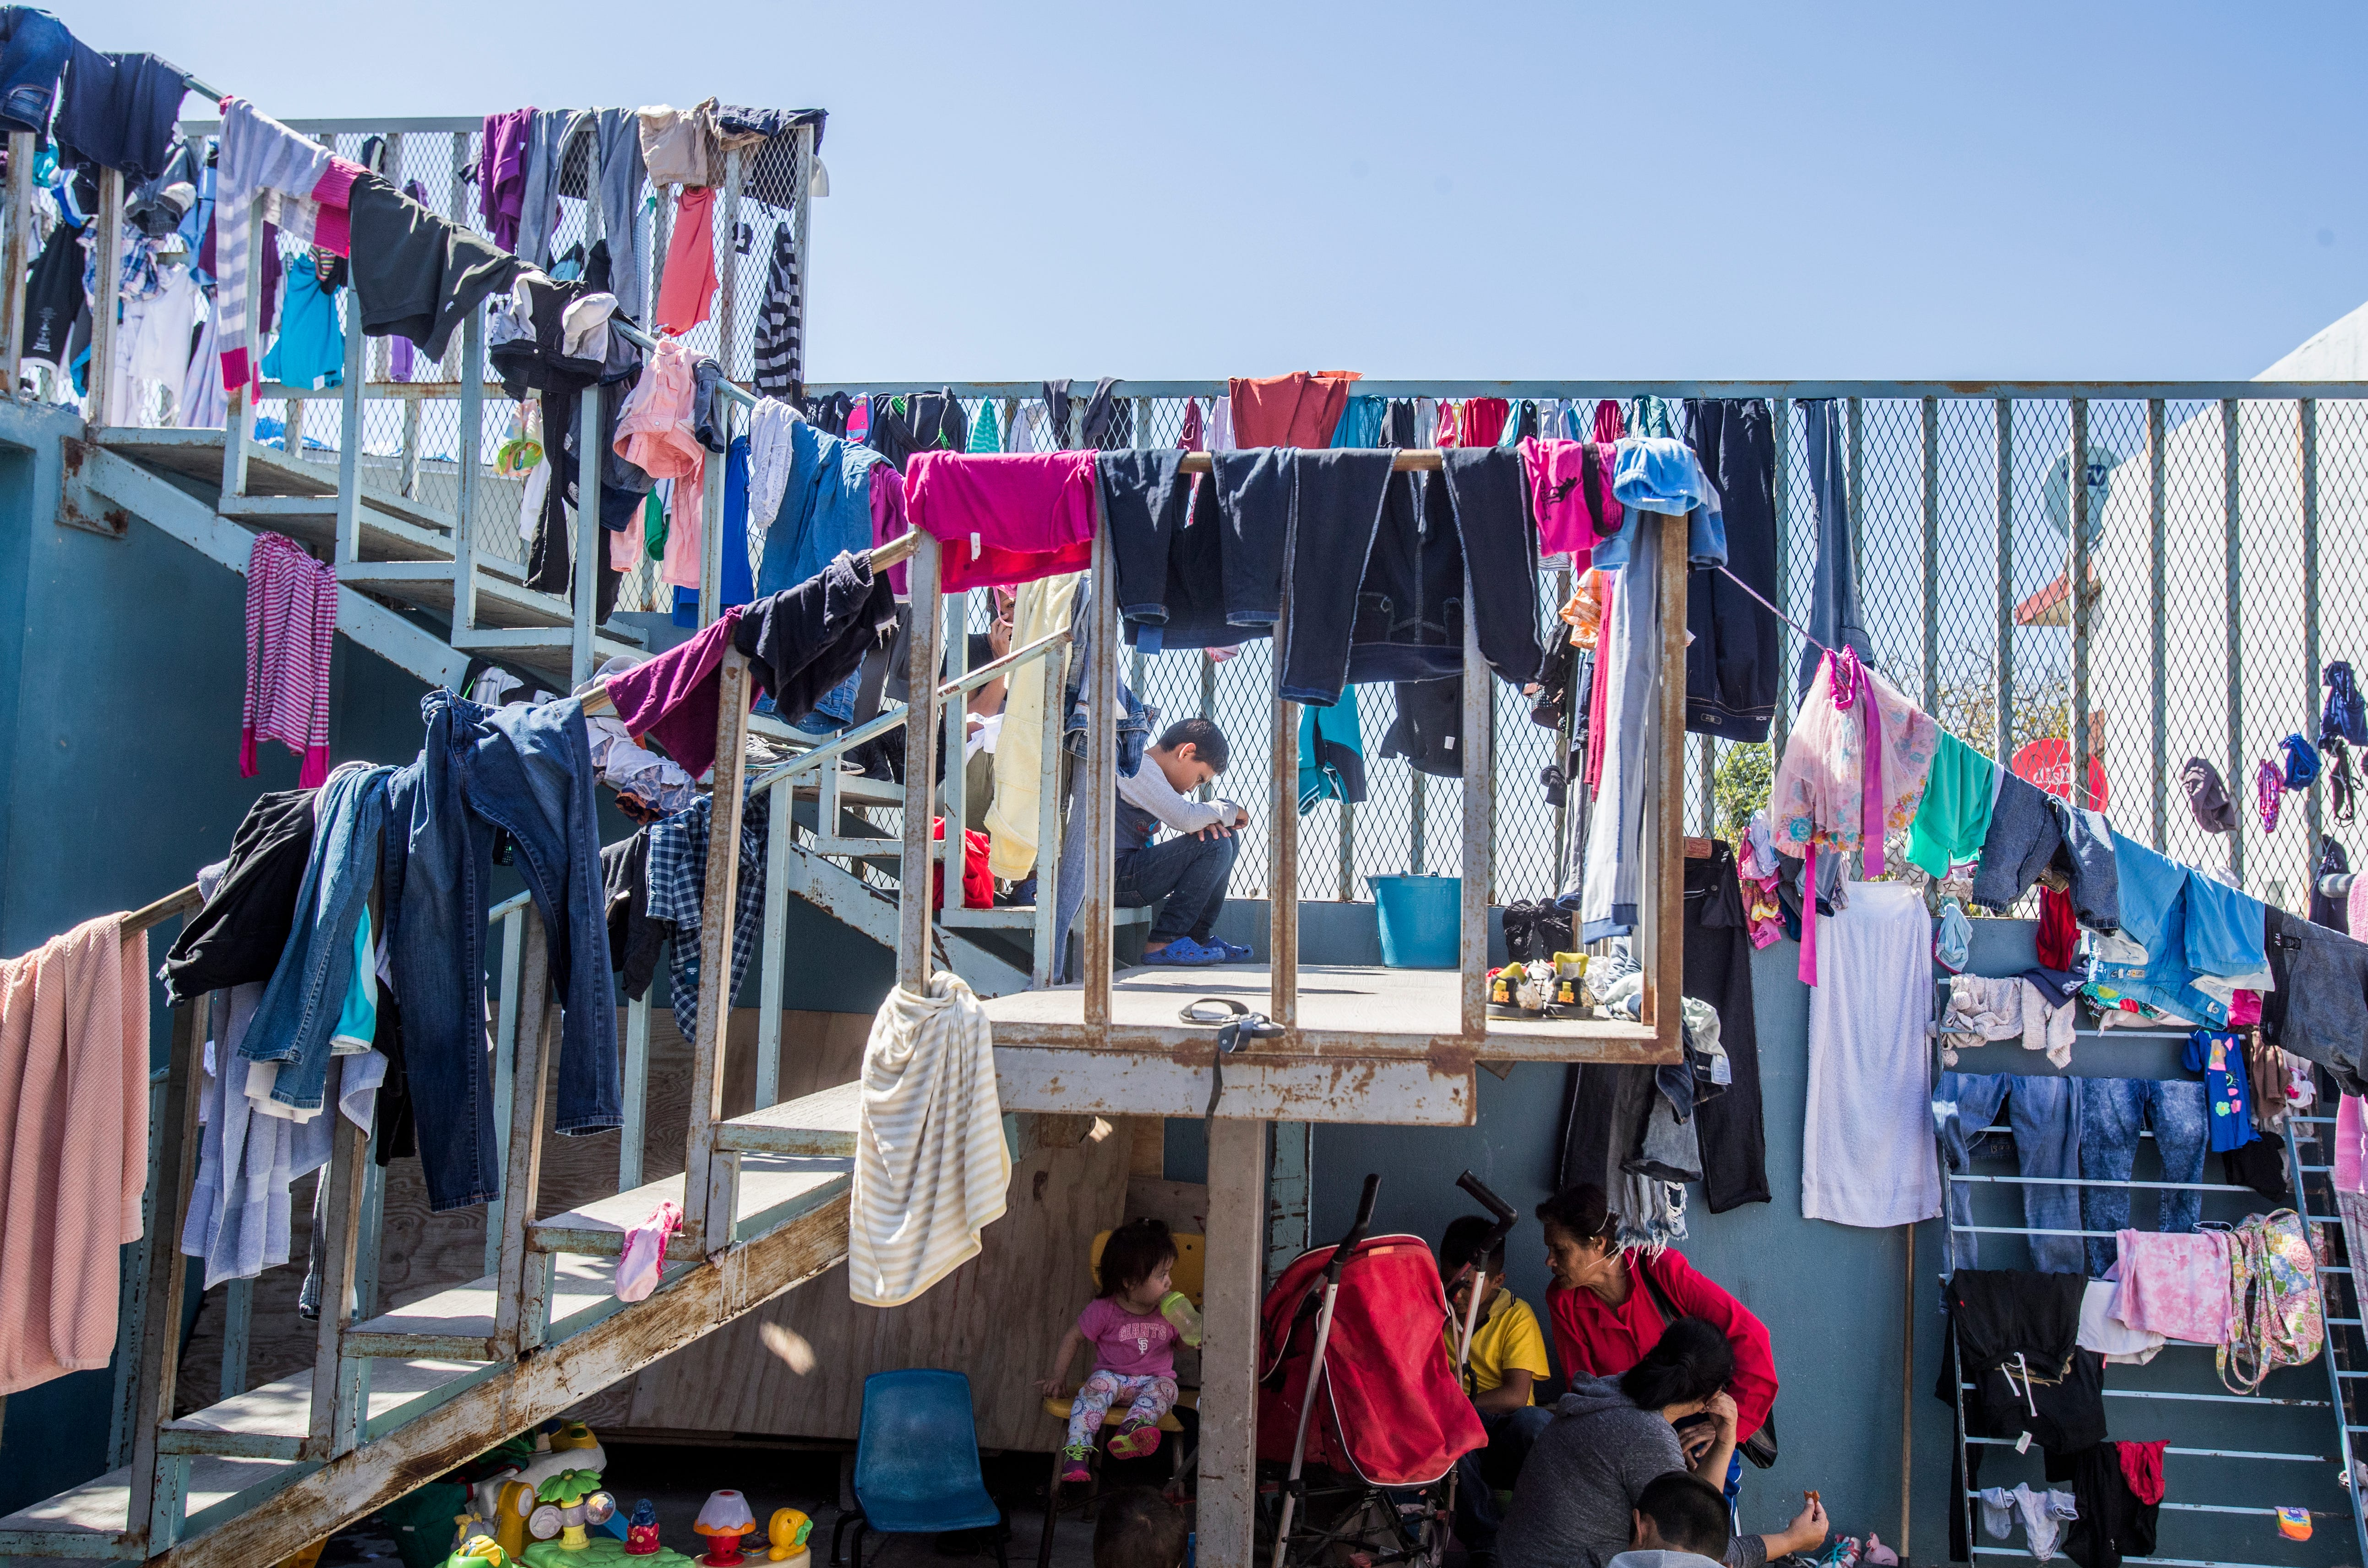 In Tijuana, the poorest asylum seekers bide their time in shelters, where they do their laundry and eat communal meals.